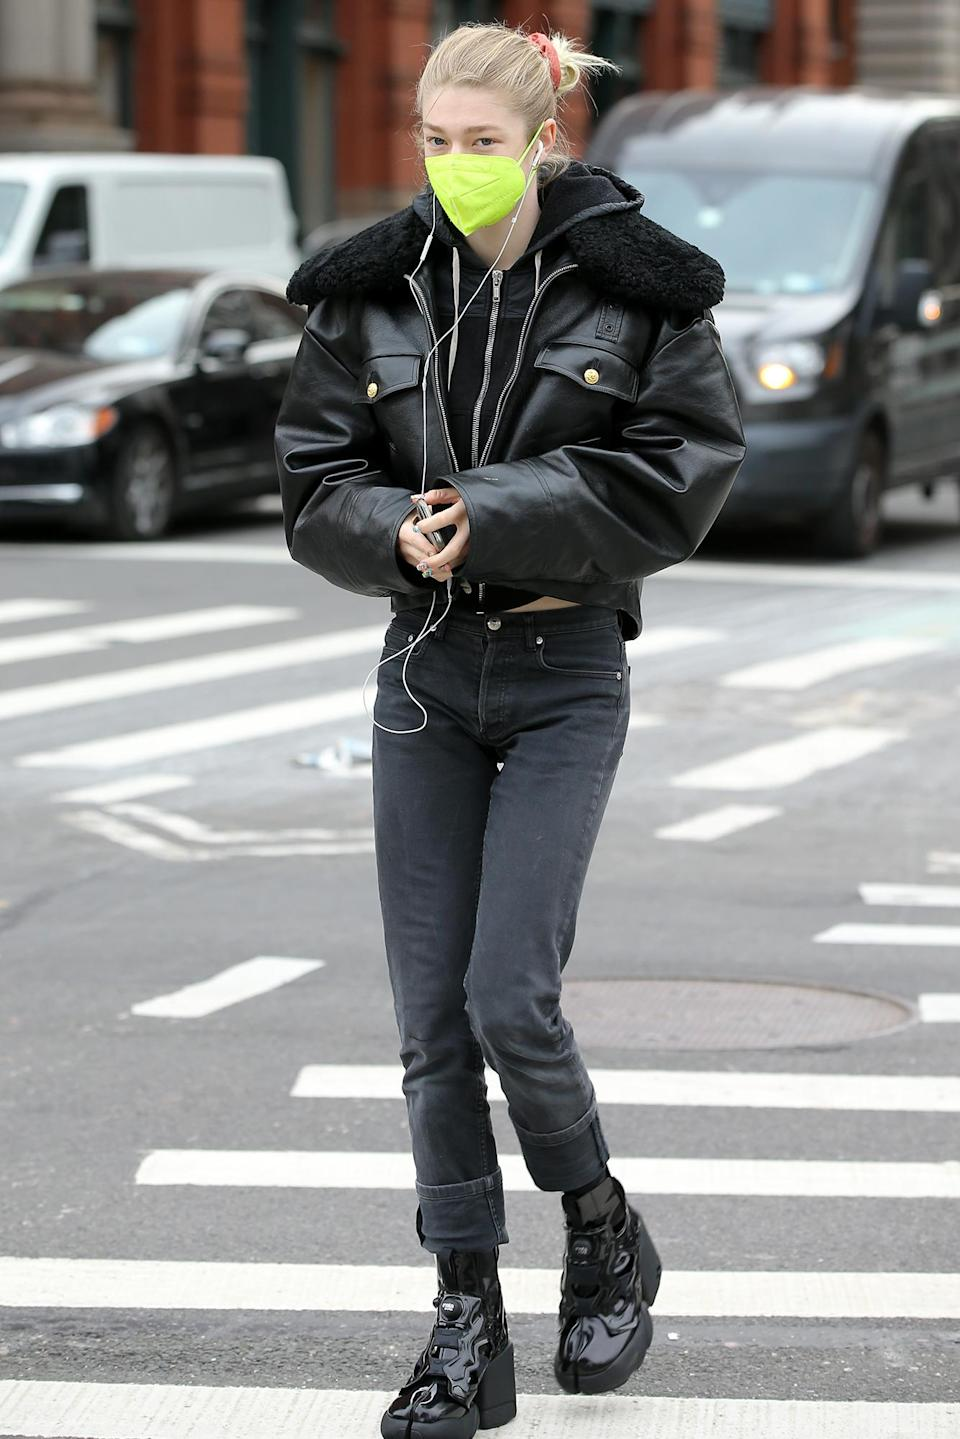 <p><em>Euphoria</em> star Hunter Schafer steps out in all black and a neon green mask on Monday in N.Y.C.</p>